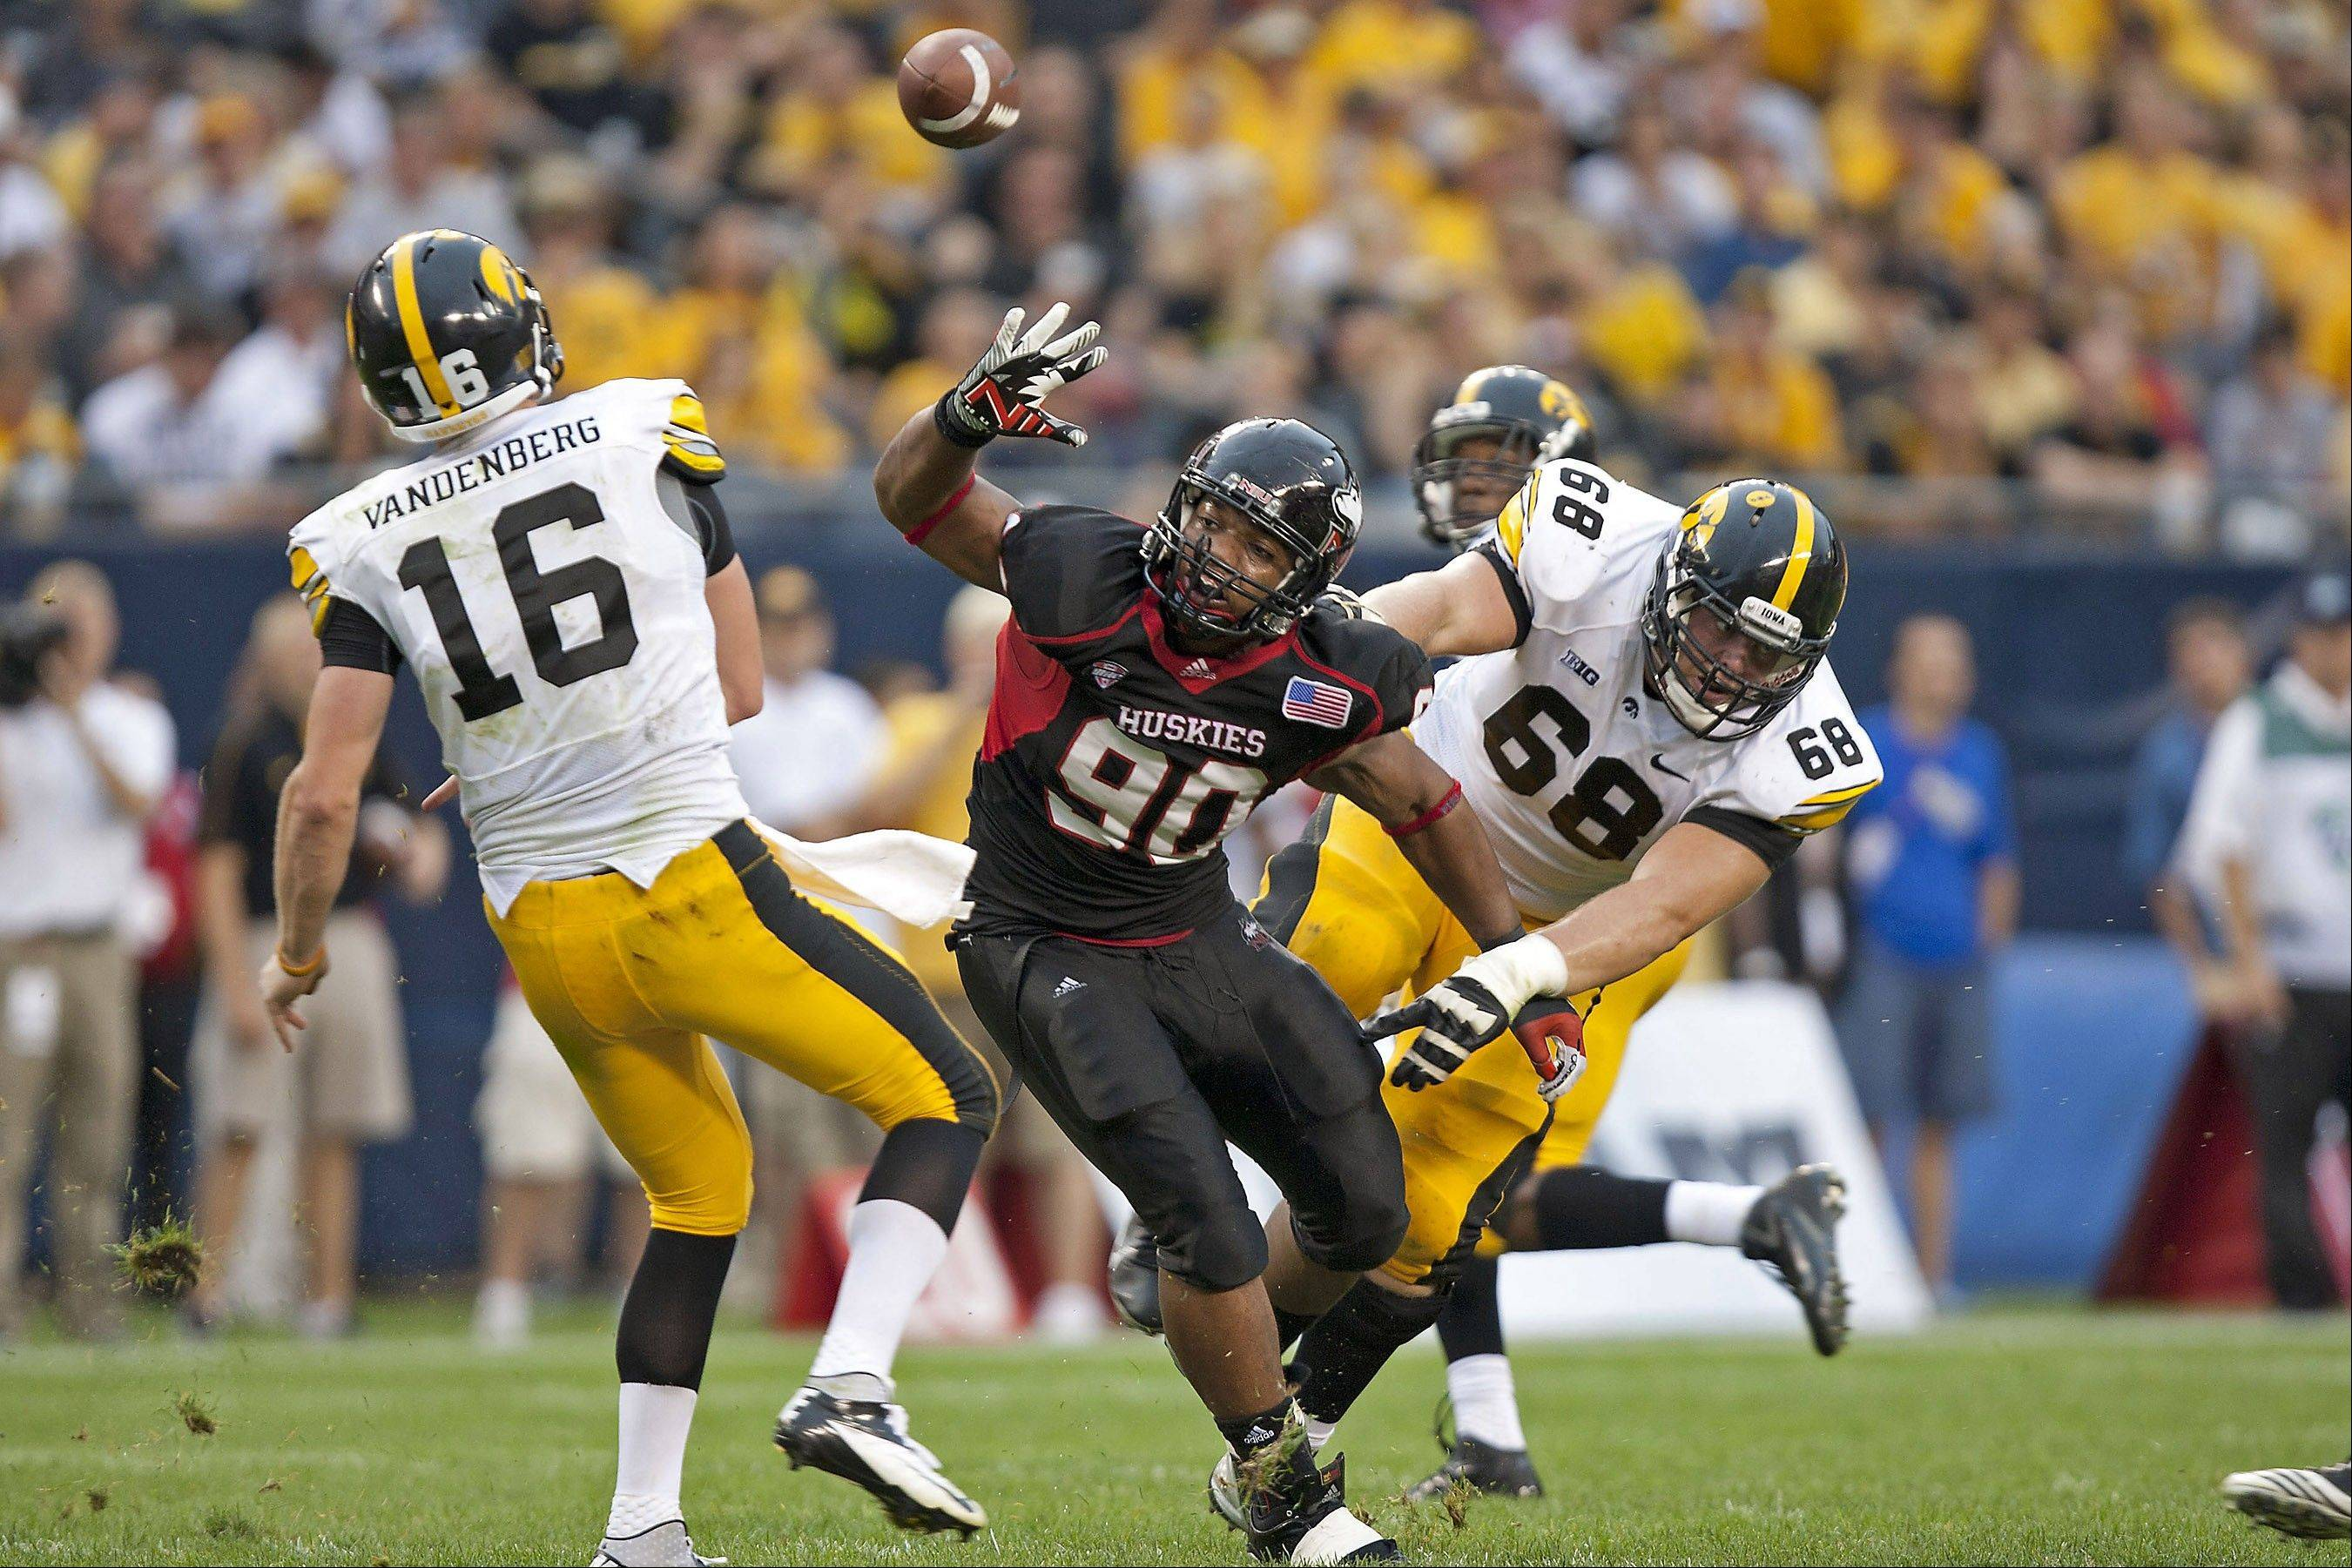 Northern Illinois defensive end Alan Baxter of Buffalo Grove applies pressure on Iowa's quarterback at Soldier Field.